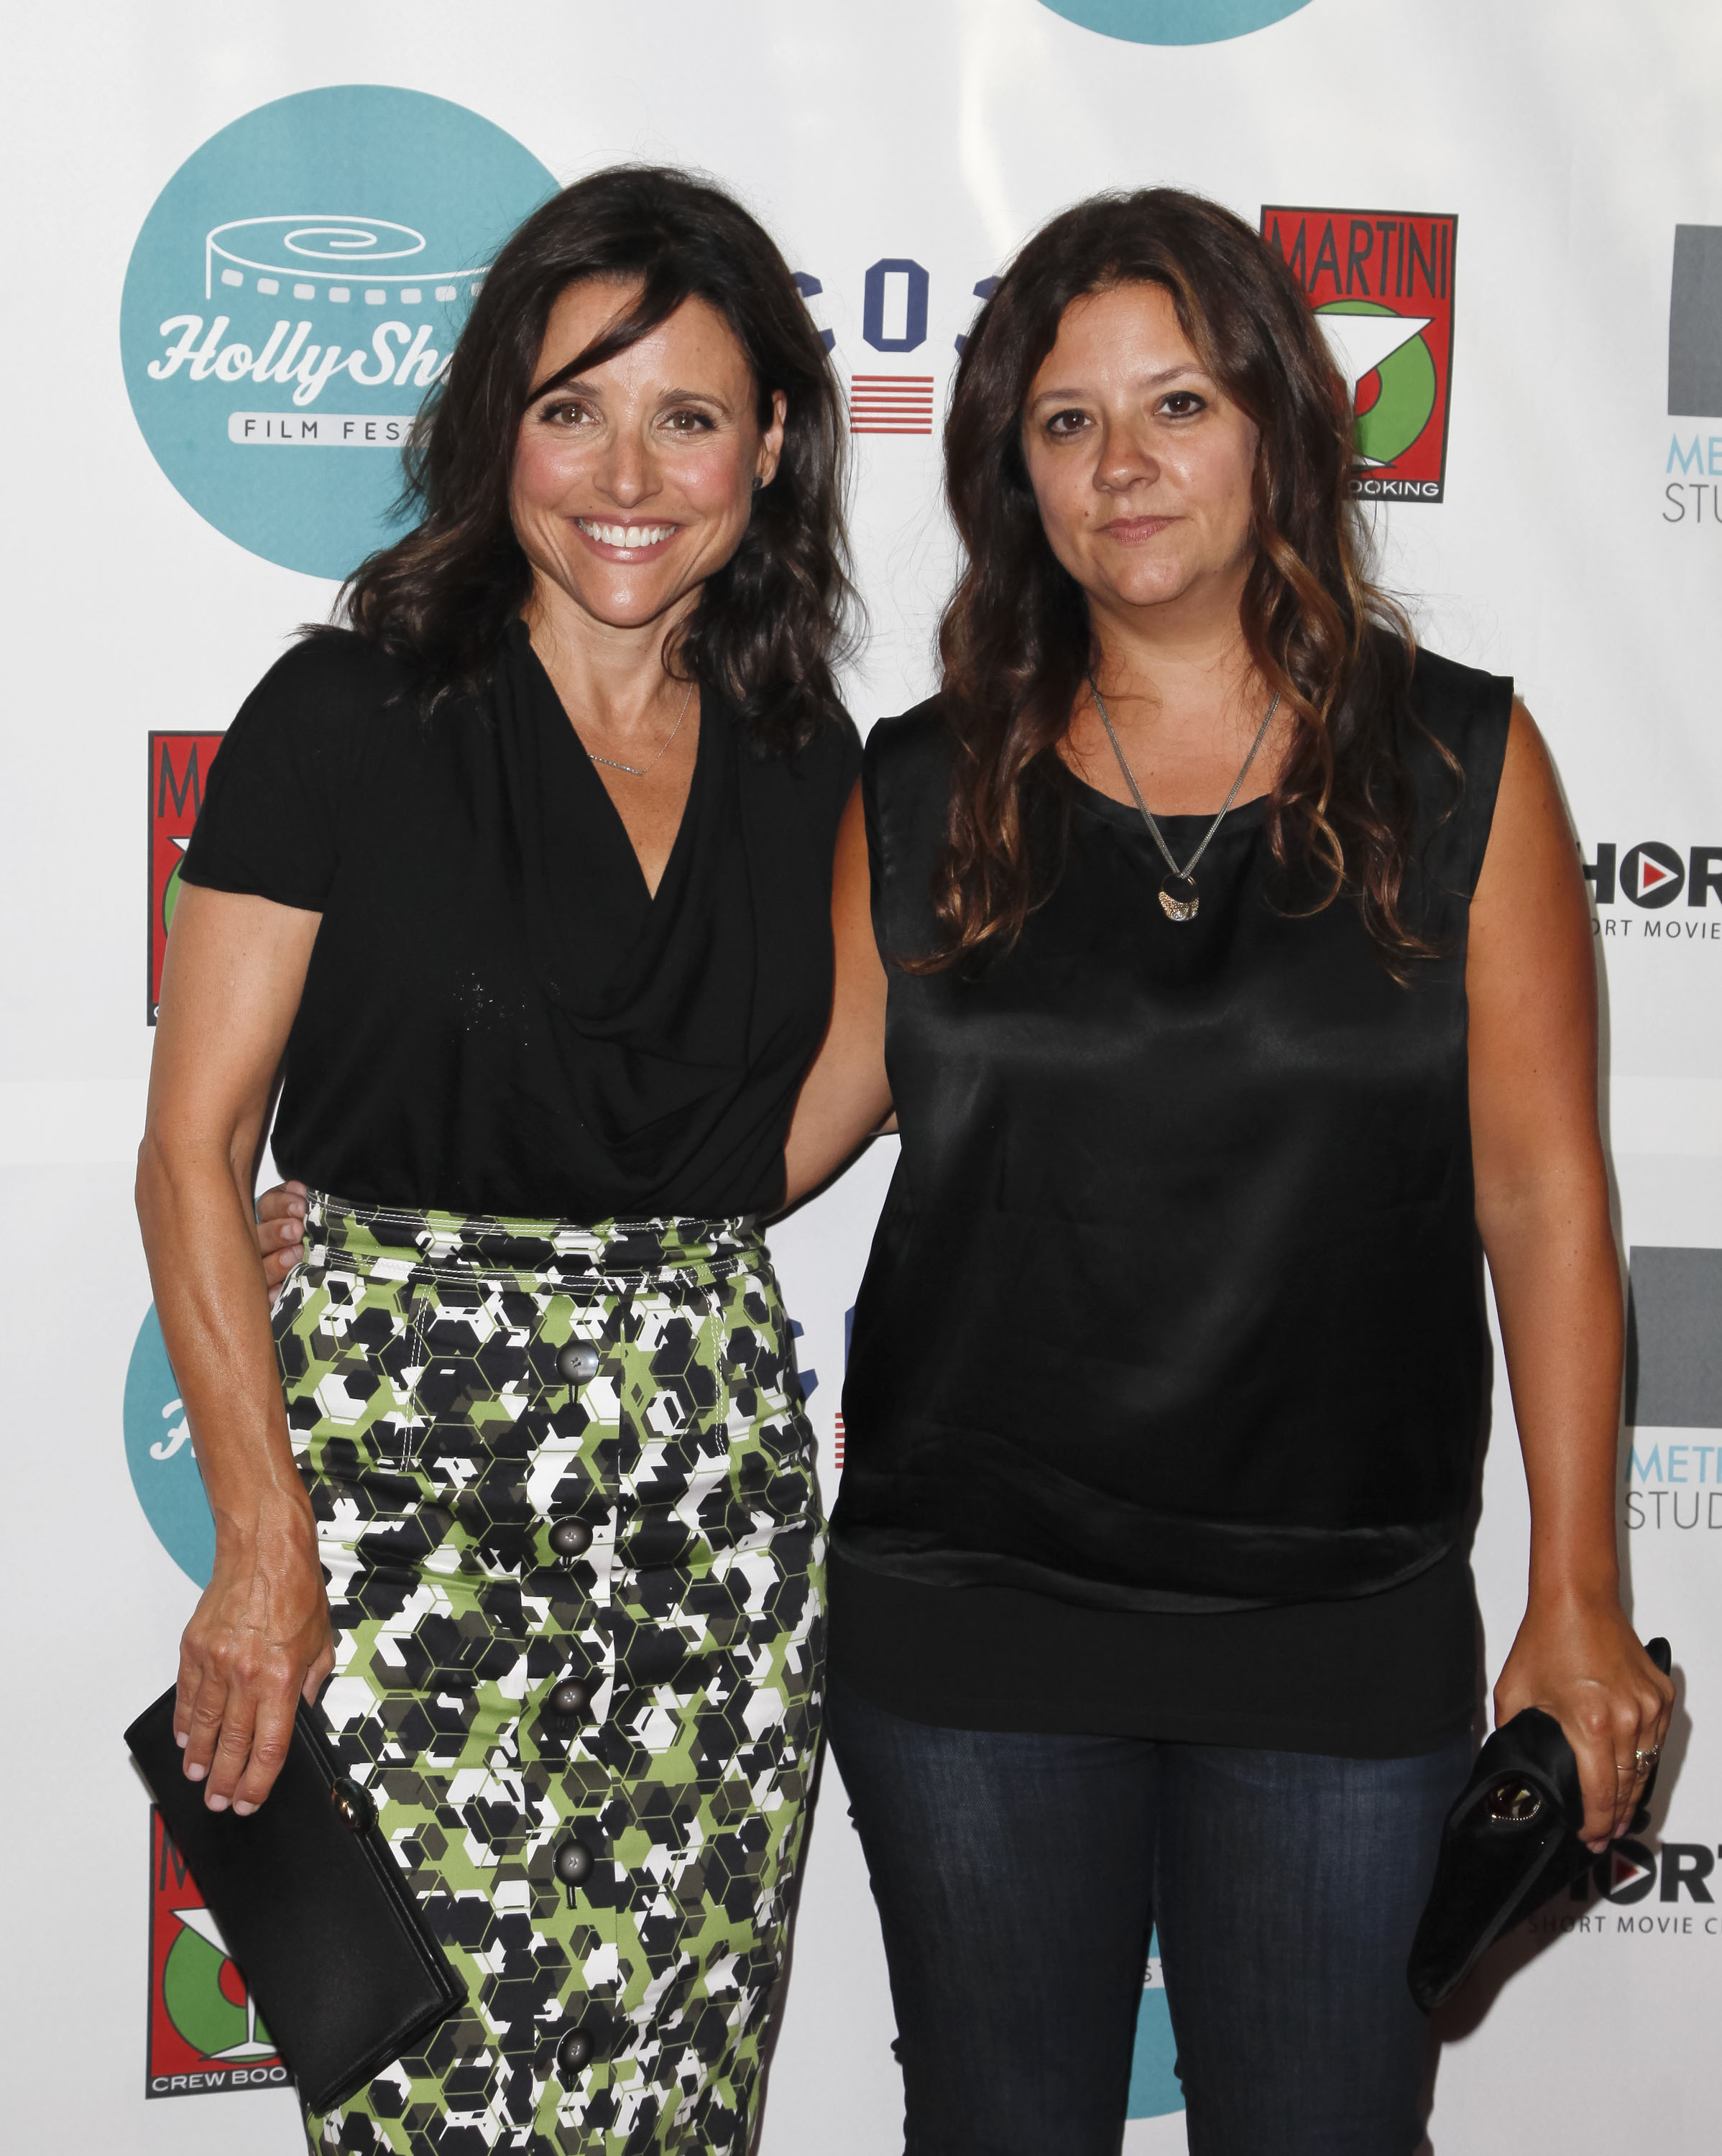 From left: Julia Louis Dreyfus and Stephanie Laing at TCL Chinese Theatre on August 14, 2014 in Hollywood, California.